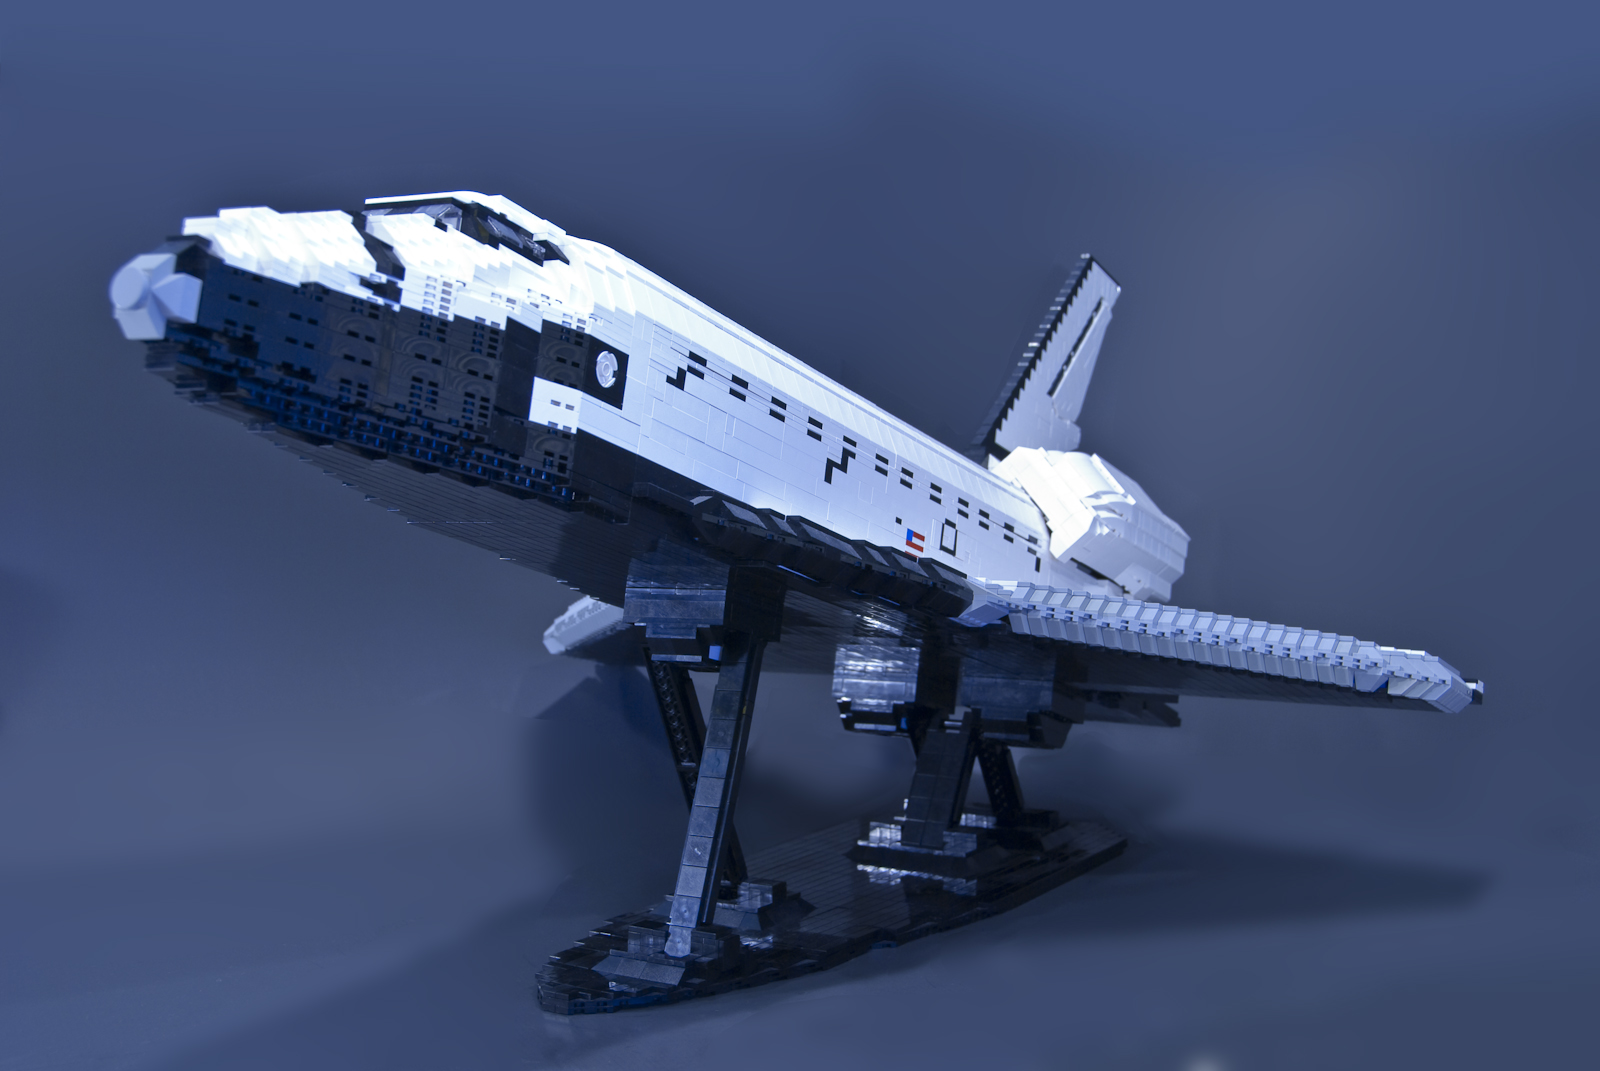 lego space shuttle large - photo #7